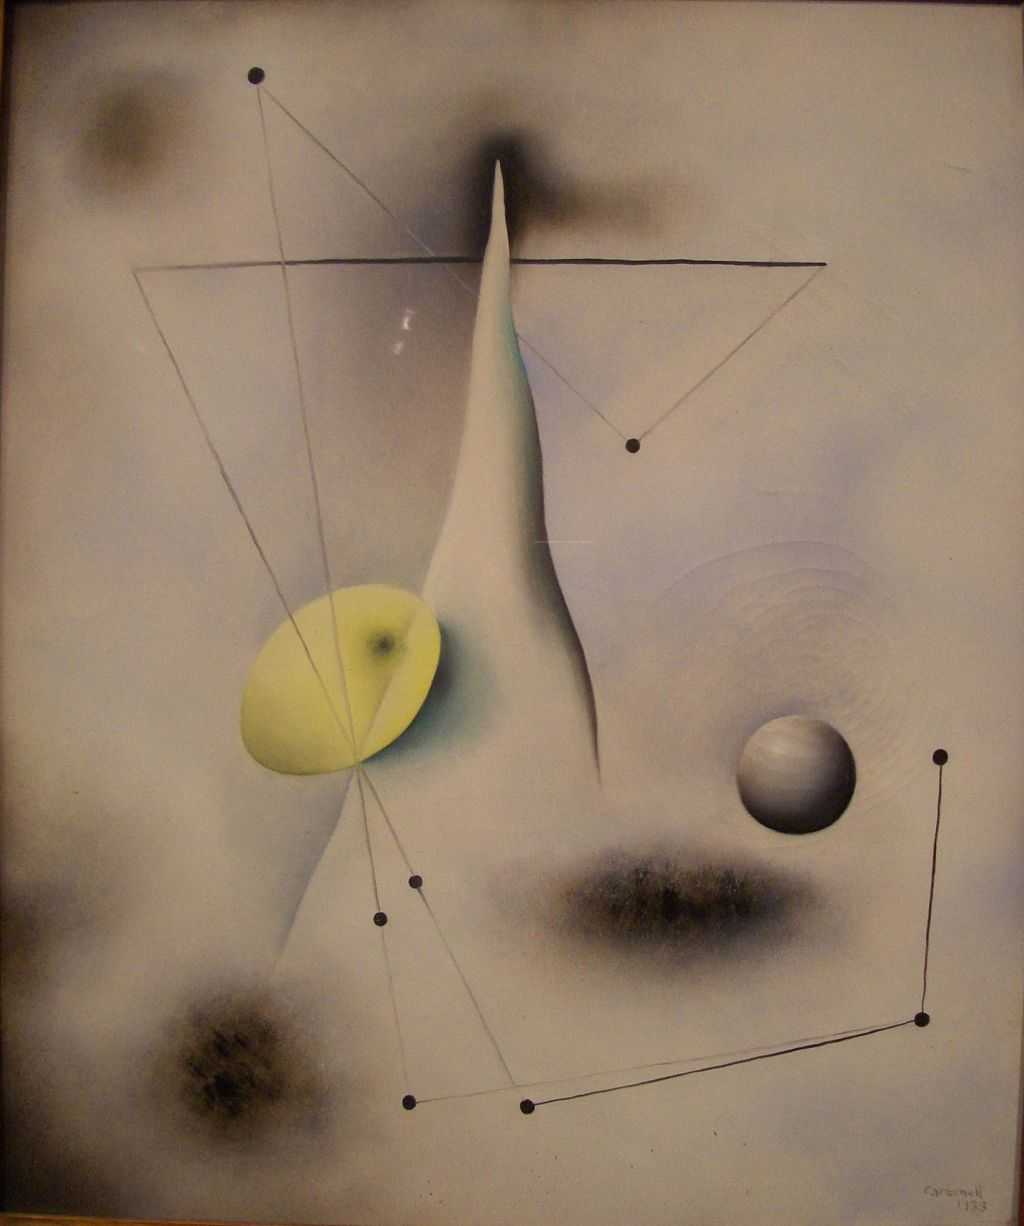 Constellation, Artur Carbonell